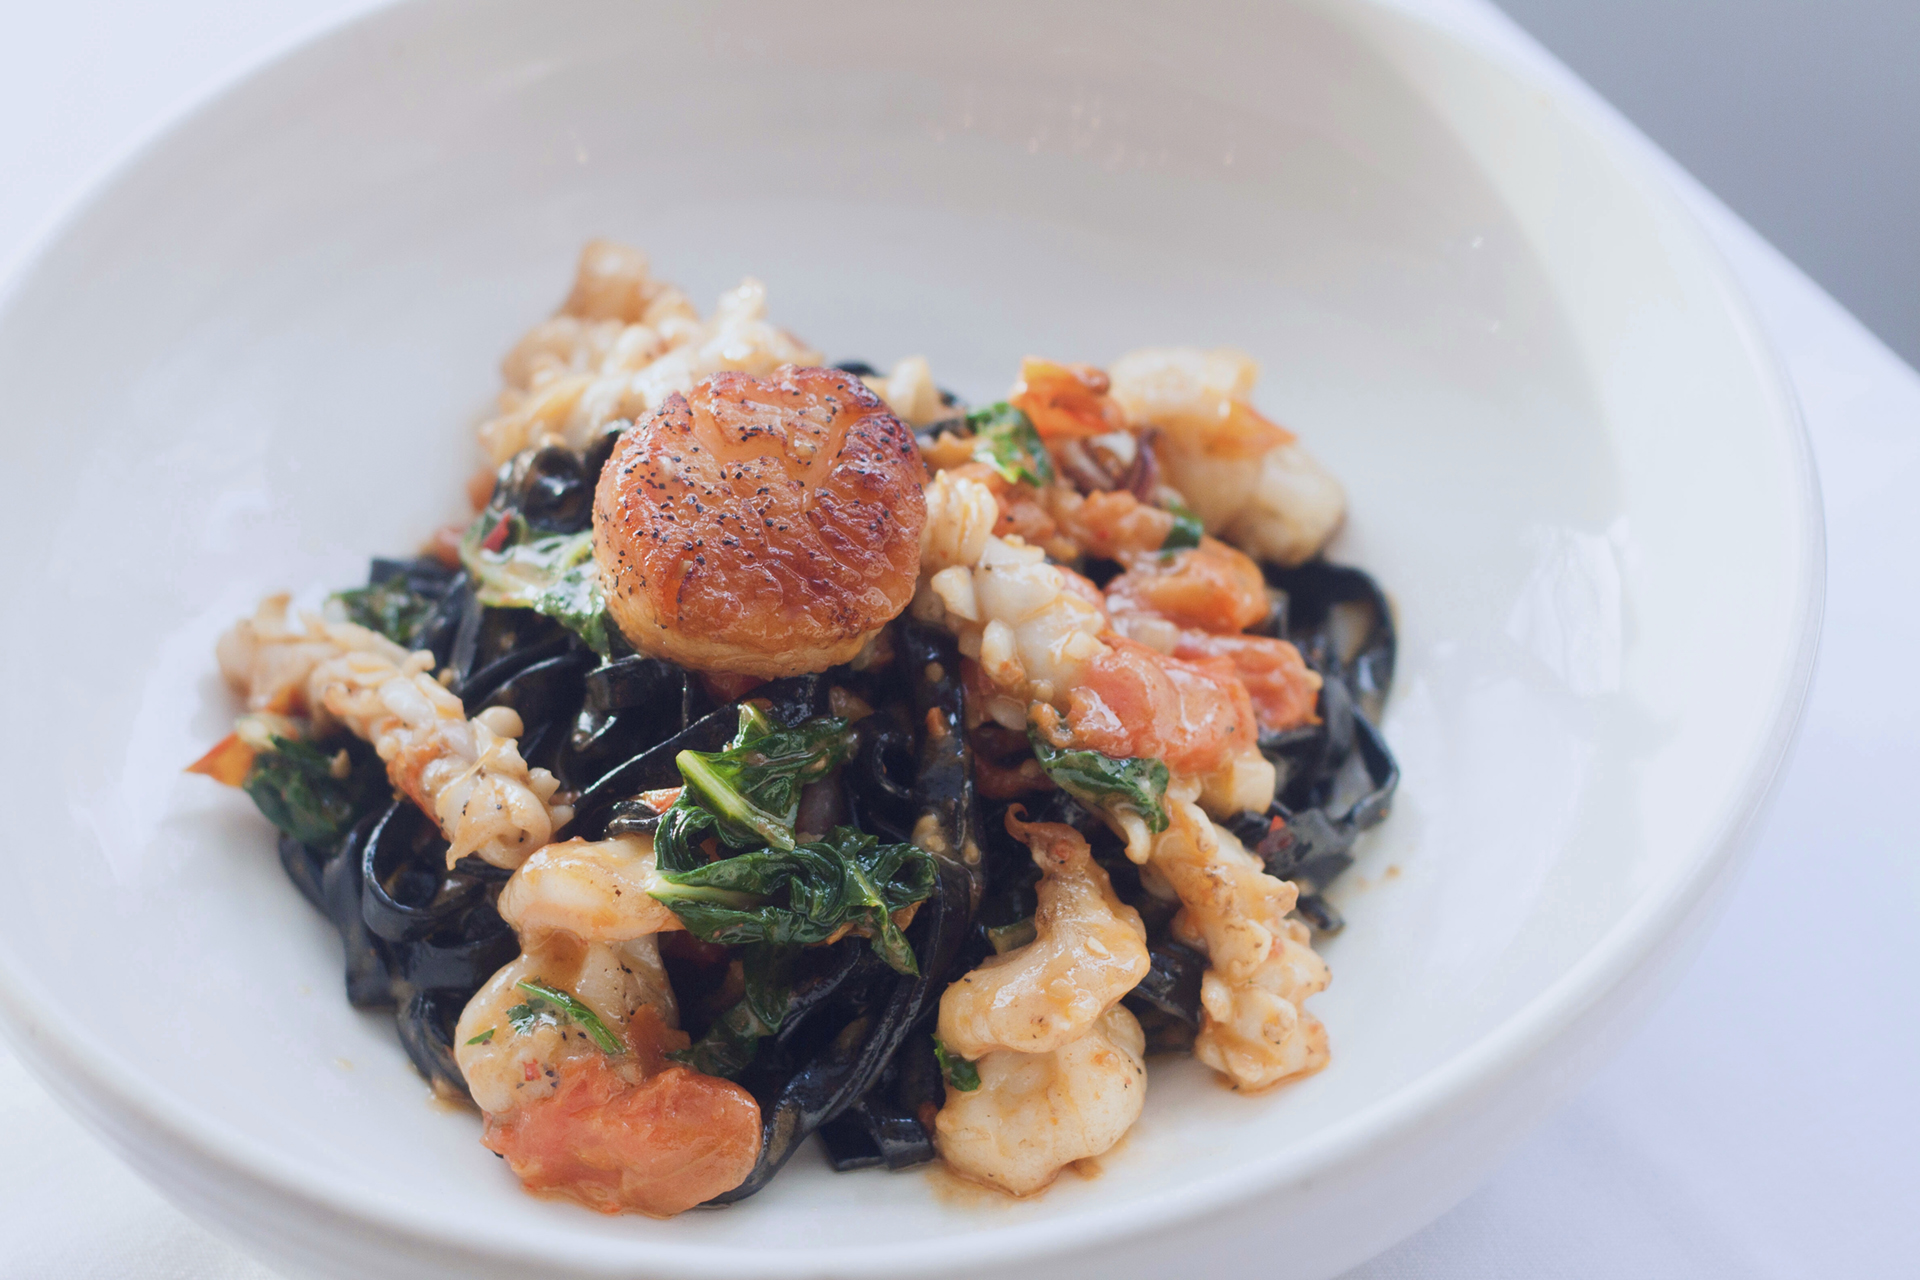 A squid ink pasta dish served at Ristorante Beatrice.